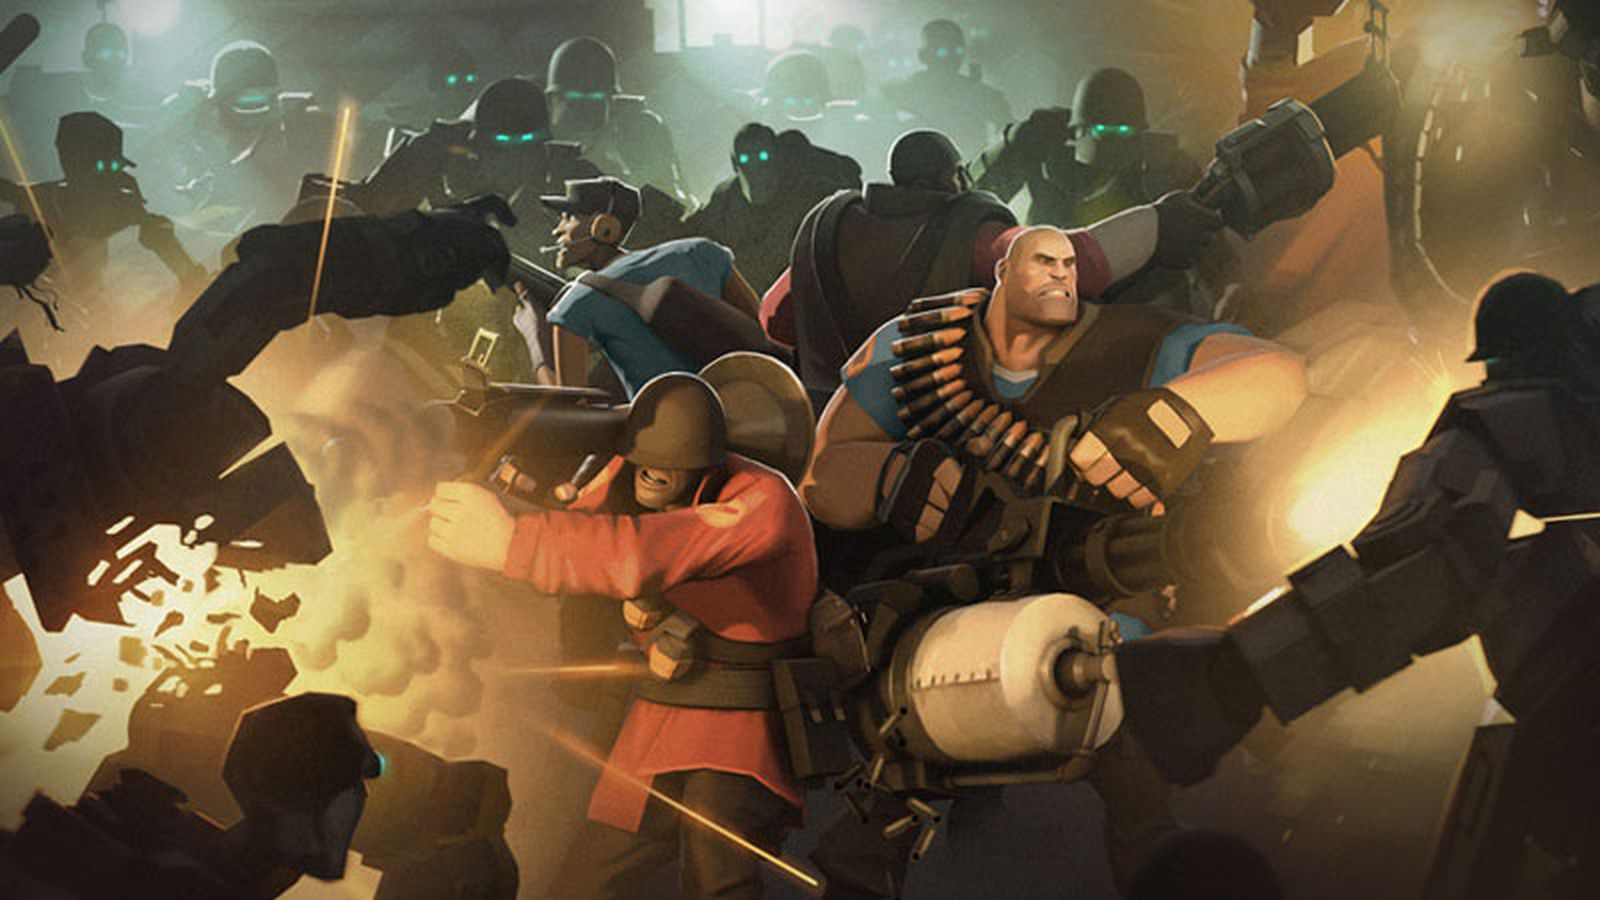 man vs machine in the work Available august 15th, 2012, mann vs machine lets you and five friends fight a lethal horde of robots on new maps, with the opportunity to upgrade abilities.